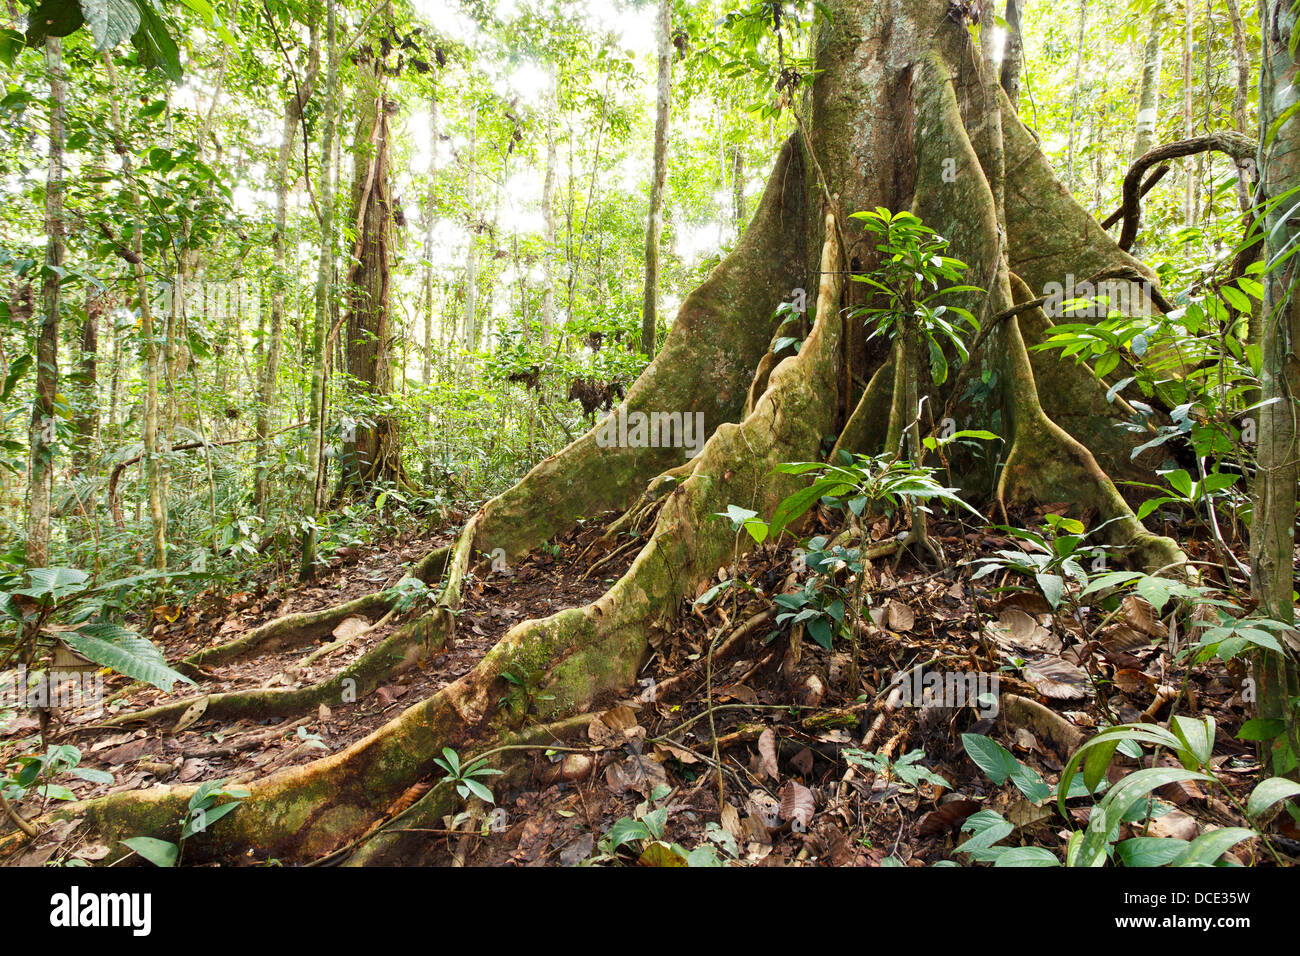 Large tree in primary tropical rainforest with buttress roots, Ecuador Stock Photo